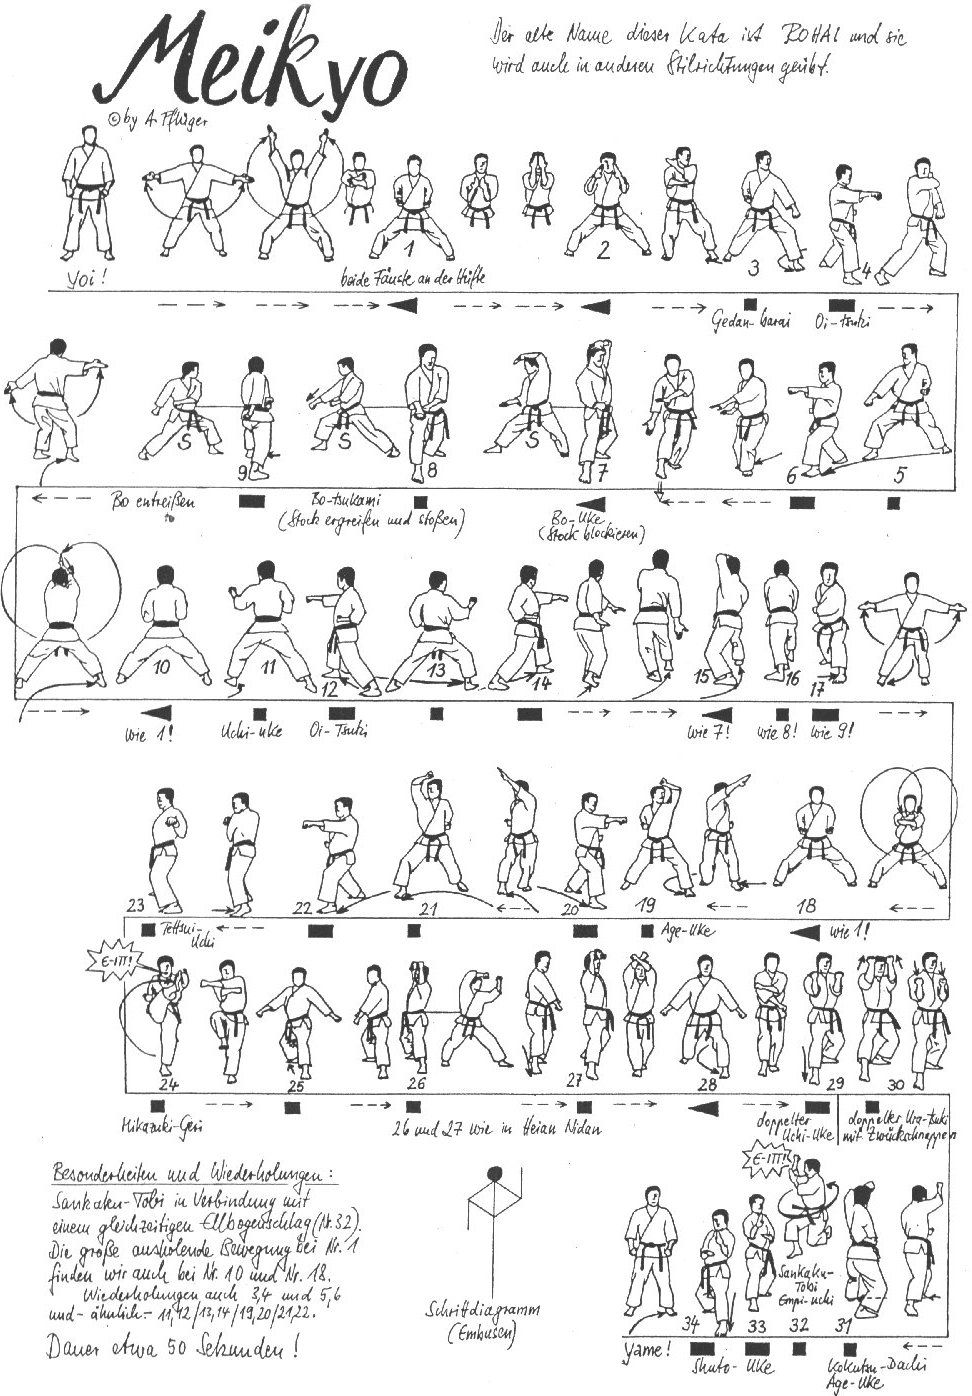 hight resolution of shorin ryu kata diagrams shotokan karate katas shorin ryu karateshorin ryu kata diagrams shotokan karate katas